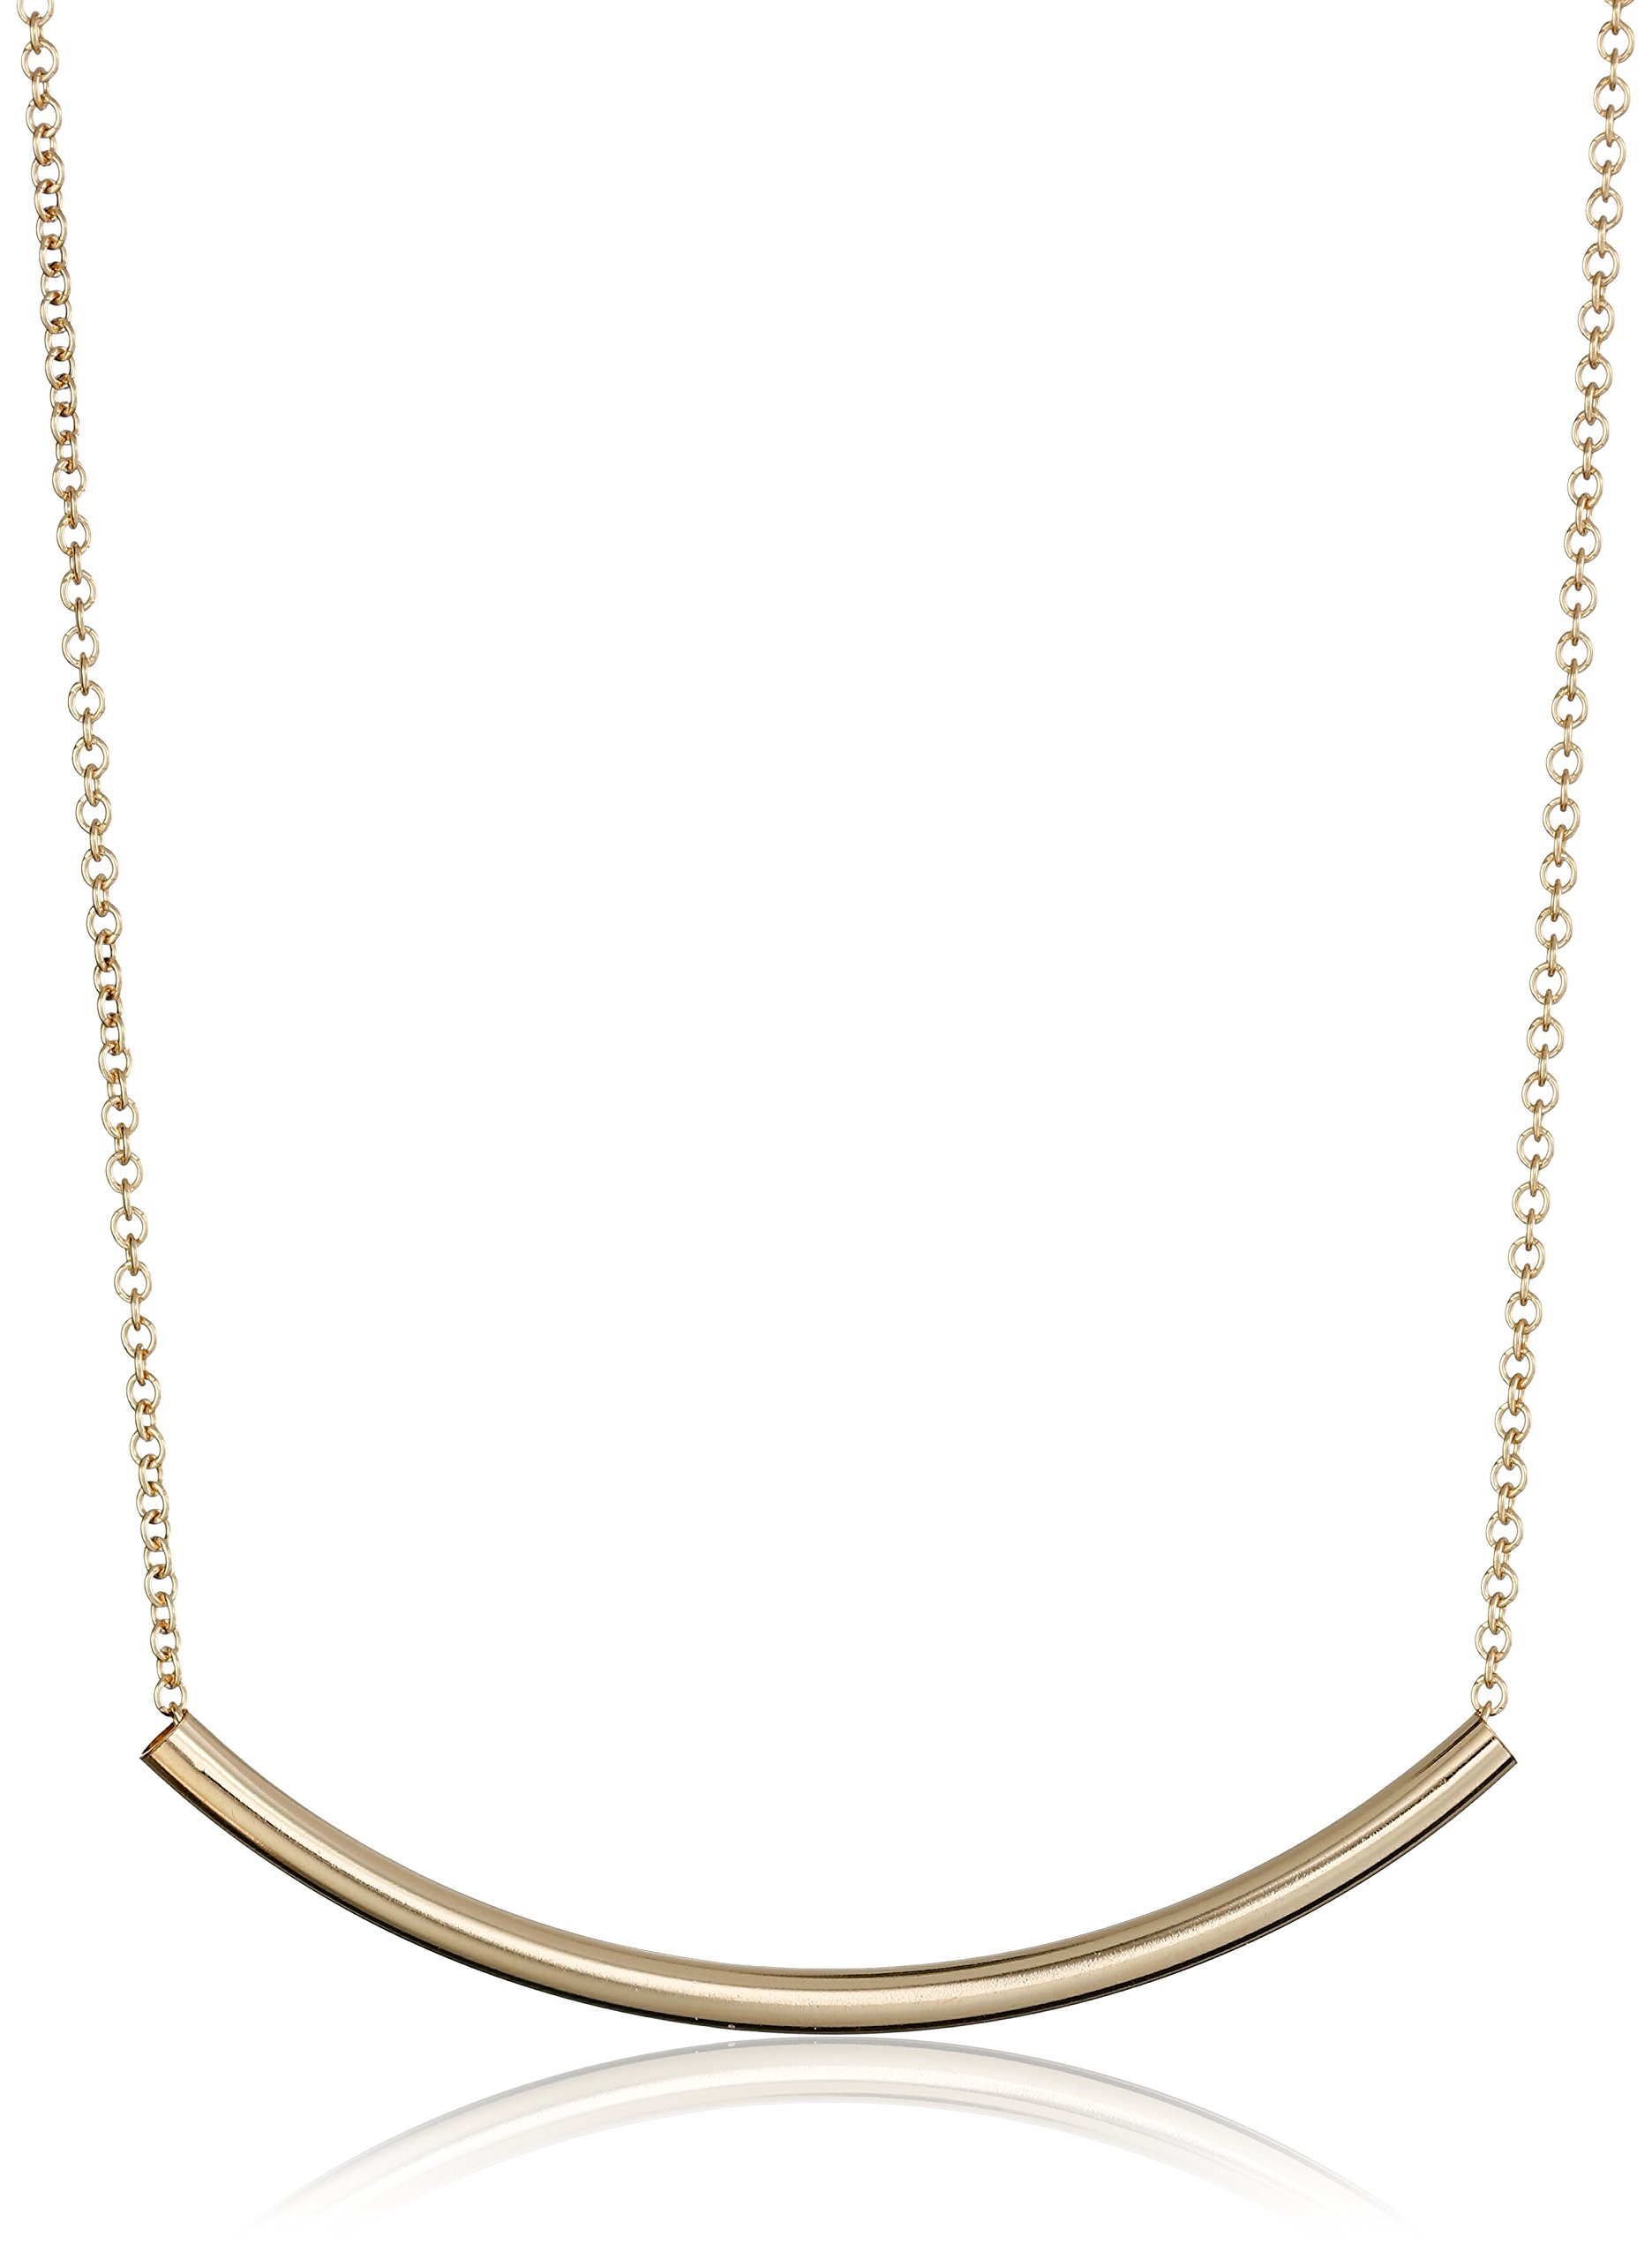 Dogeared Balance Tube Bar Gold Plated Silver Necklace, 16'' with 2'' extender by Dogeared (Image #3)